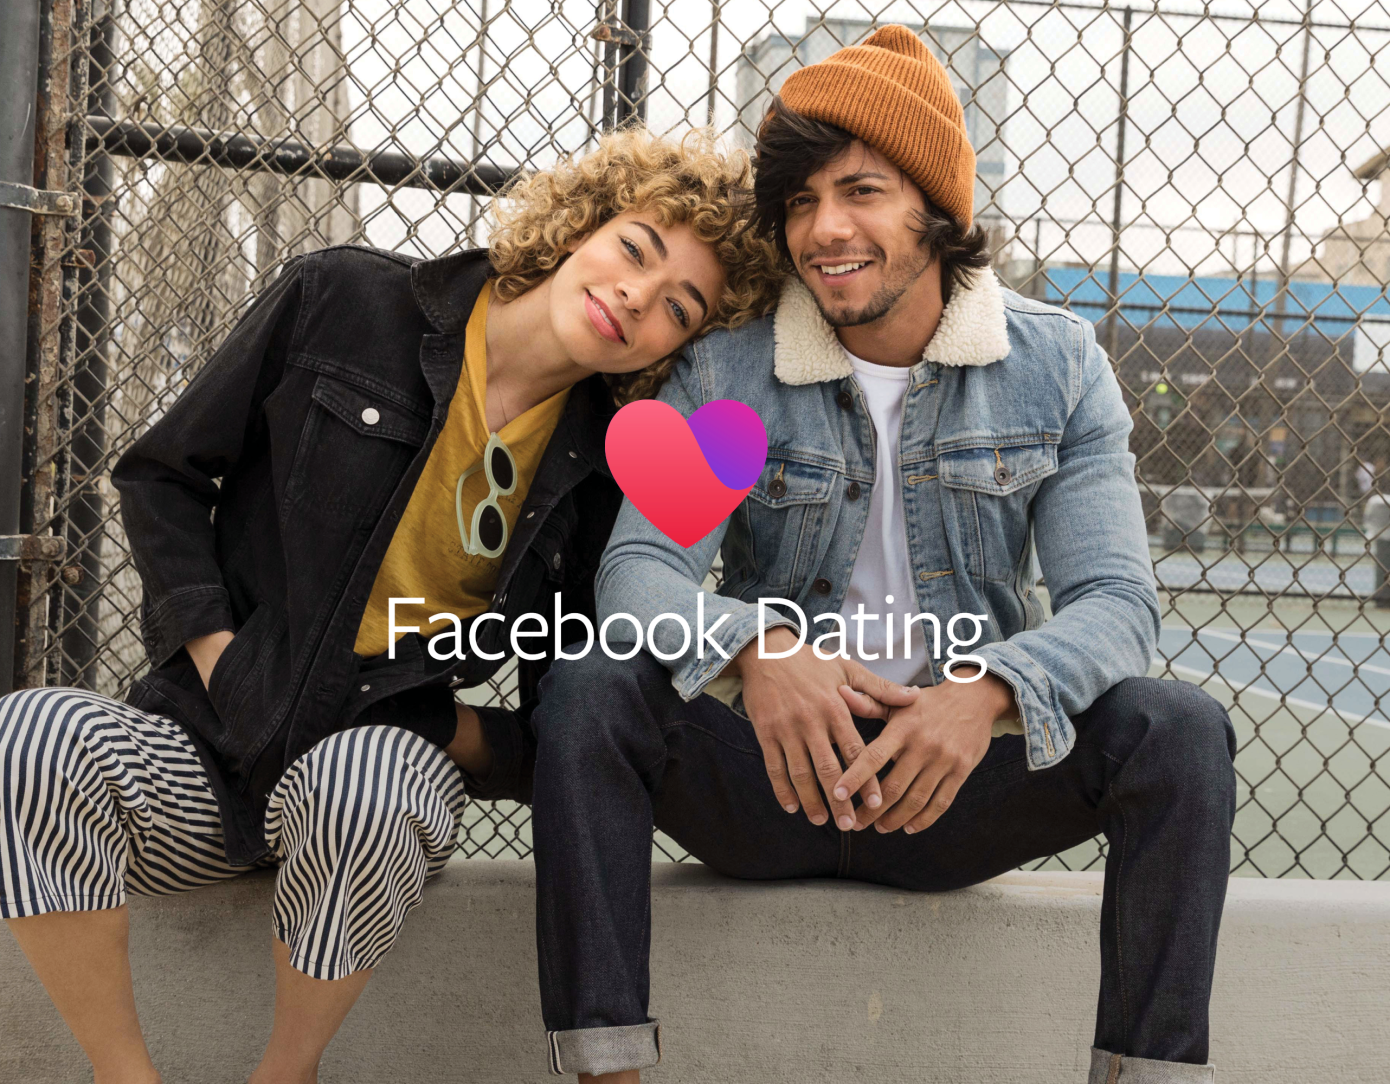 Facebook Dating se integra con Instagram y Facebook Stories